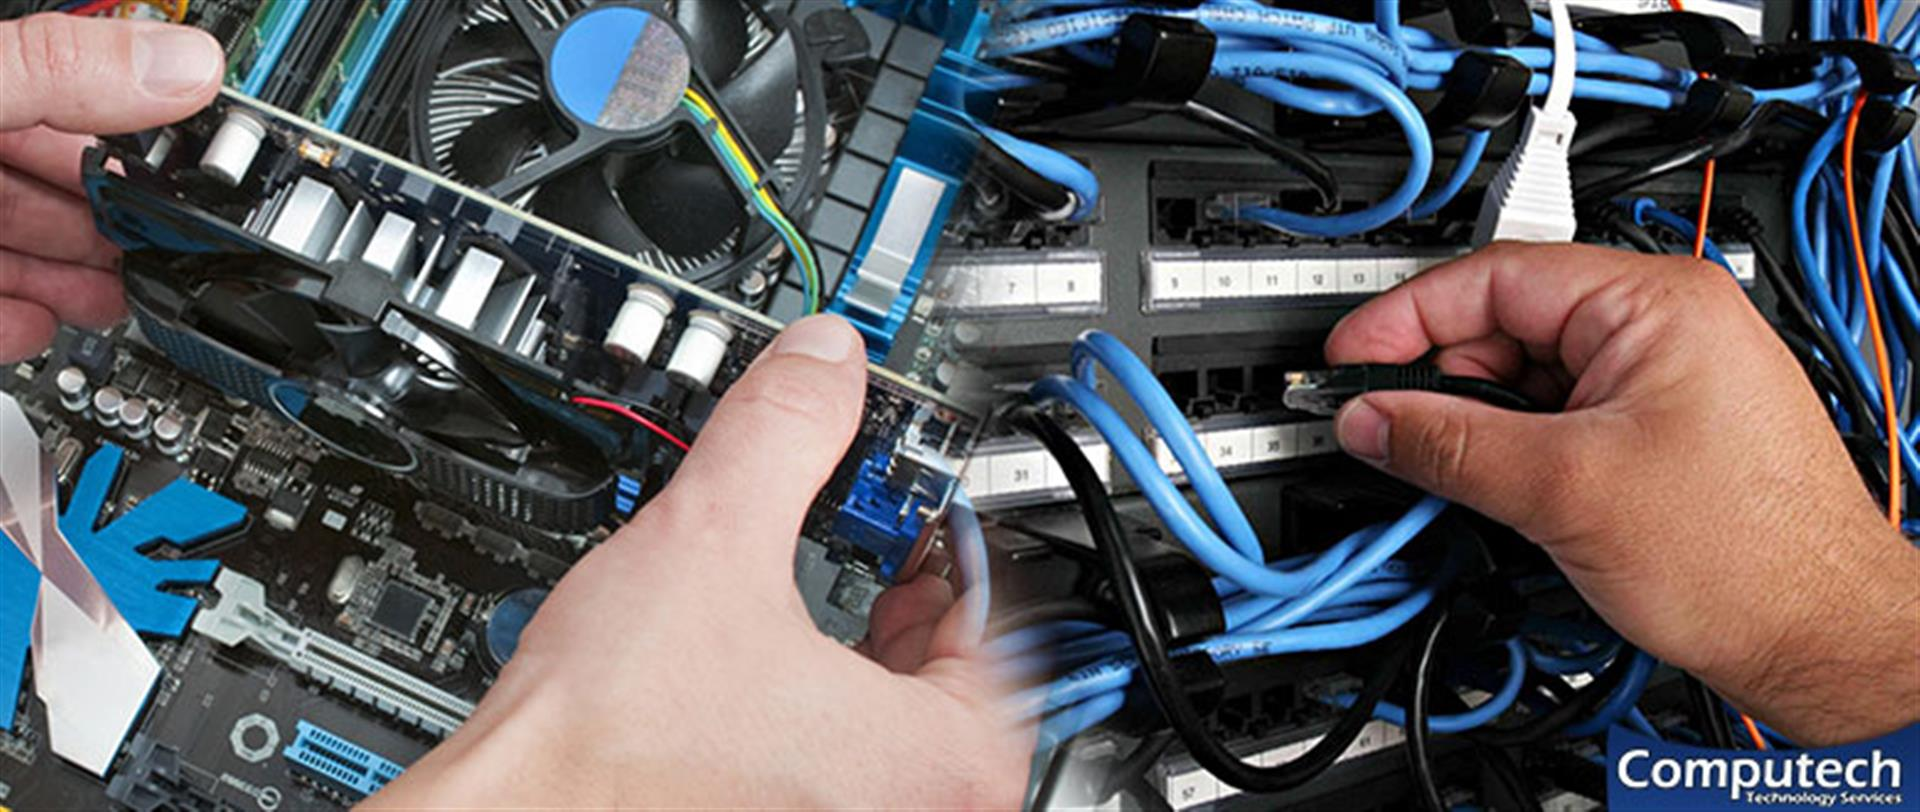 Rockmart Georgia Onsite Computer PC & Printer Repair, Networking, Voice & Data Cabling Services